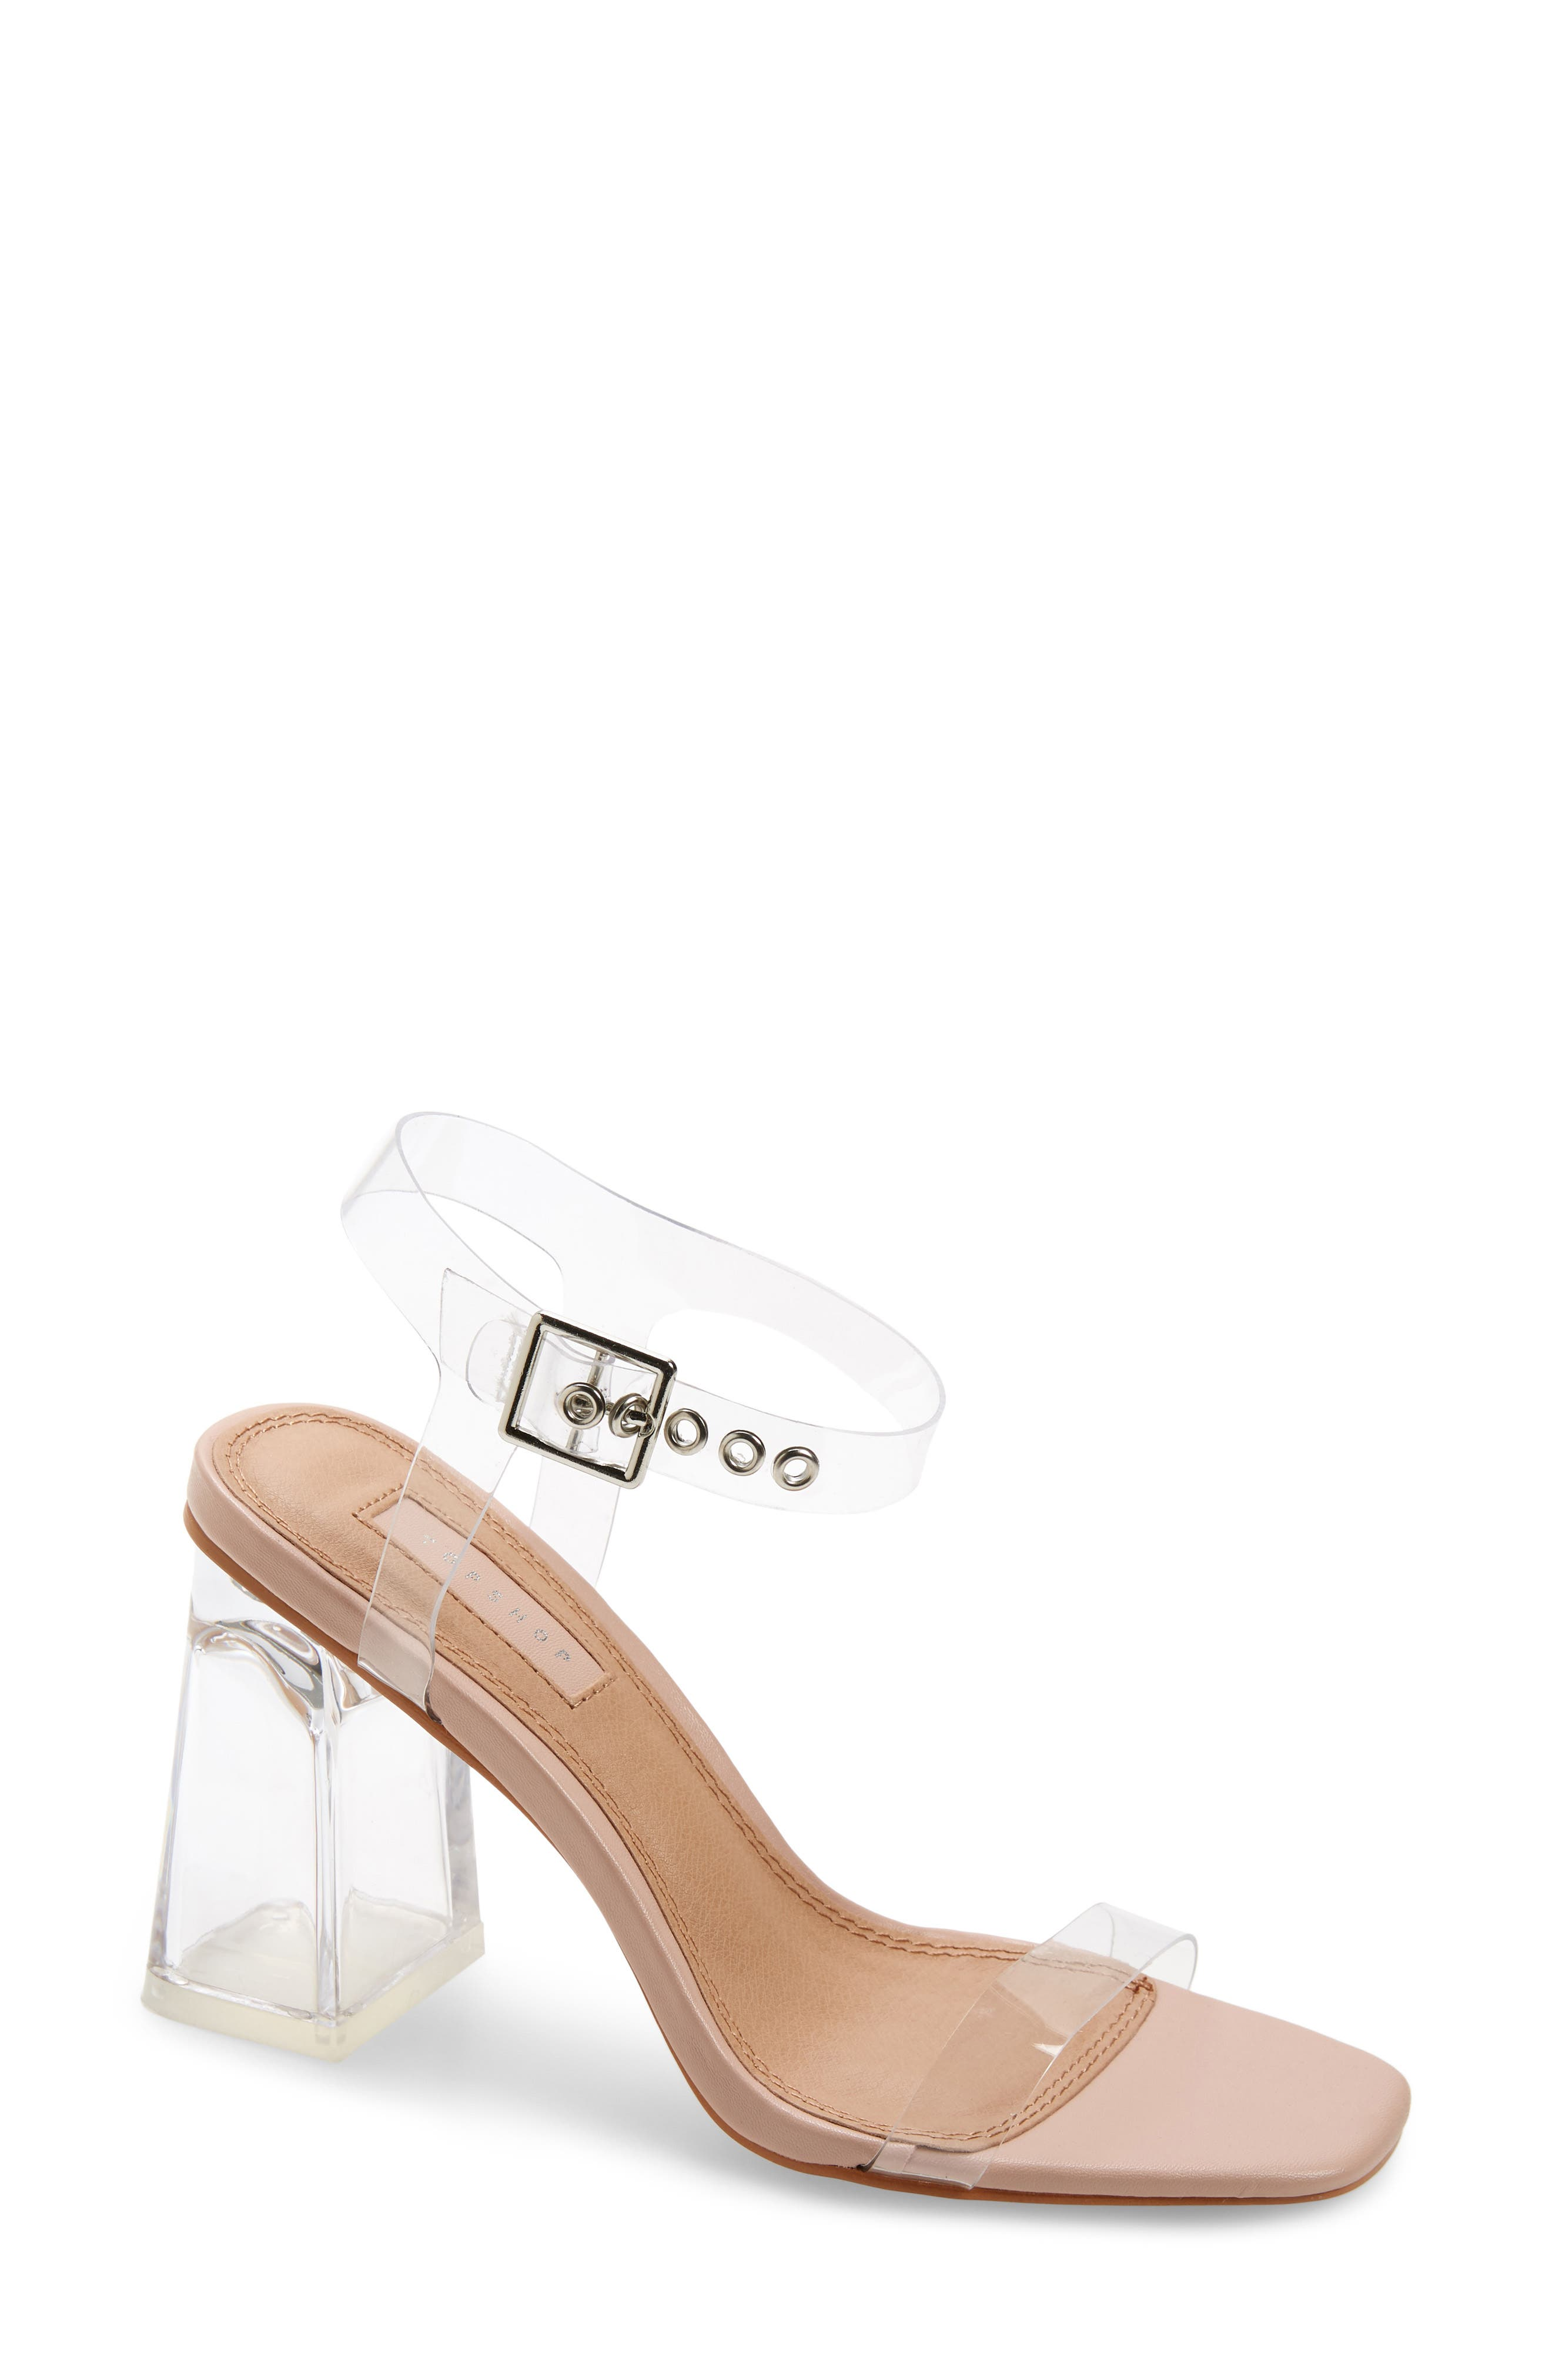 Make a clear statement in this pump that gives you a bare look with translucent construction and a cool floating ankle strap. Style Name: Topshop Sonia Clear Block Heel Sandal (Women). Style Number: 6052817. Available in stores.